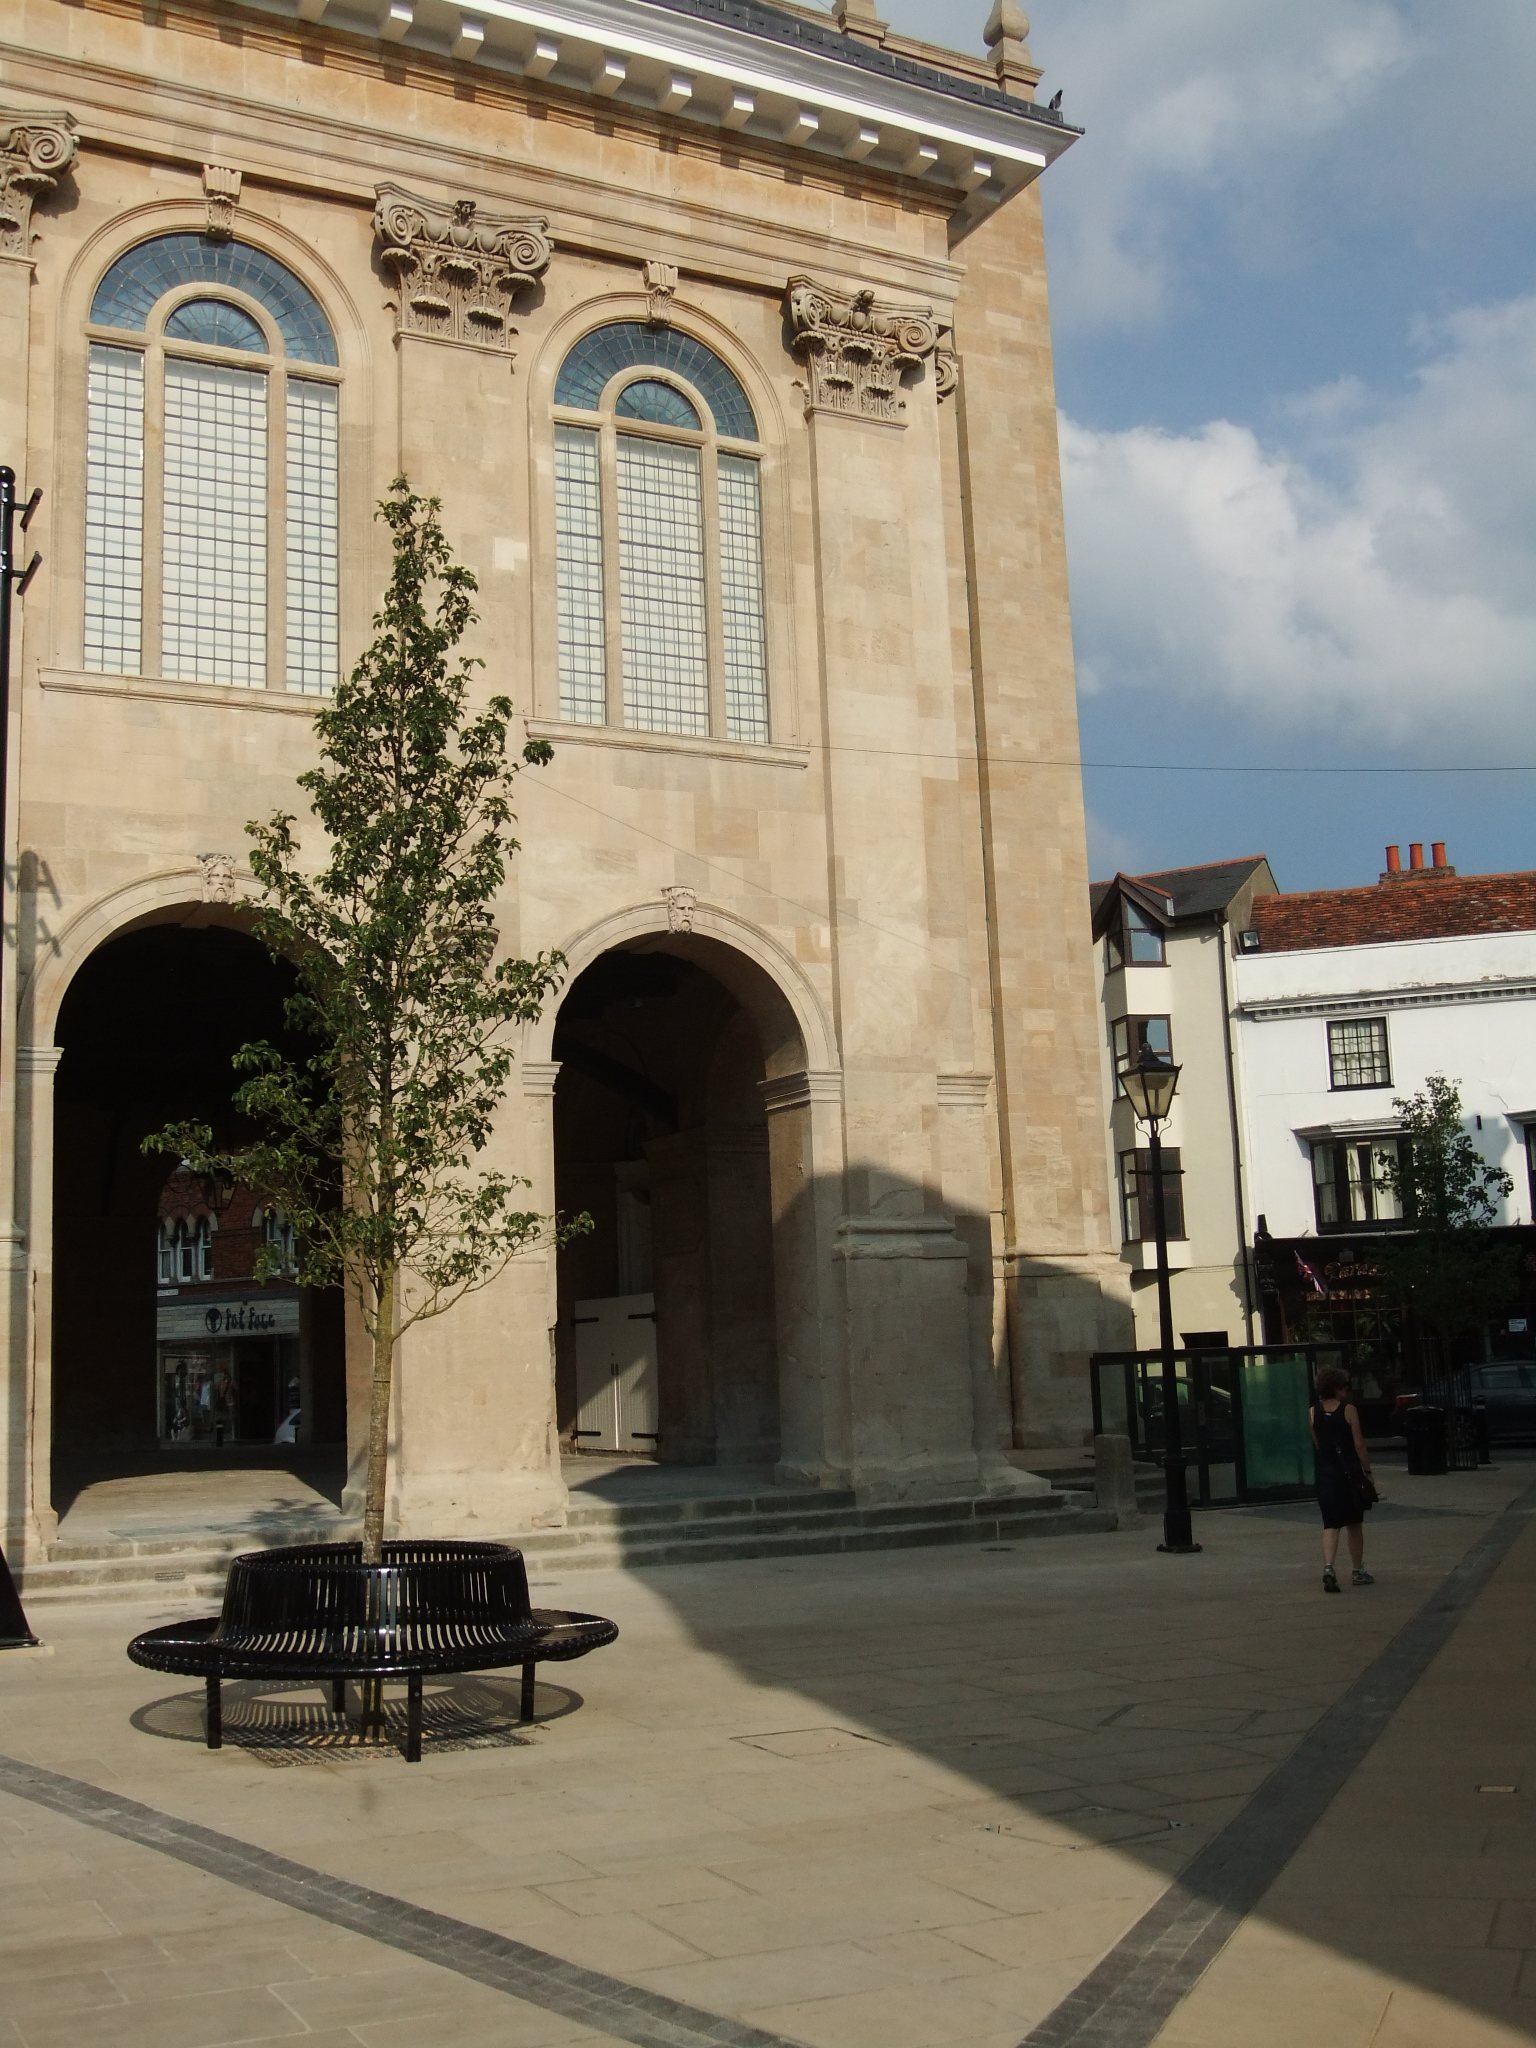 The side wall of the County Hall Museum viewed from the paved area with seating